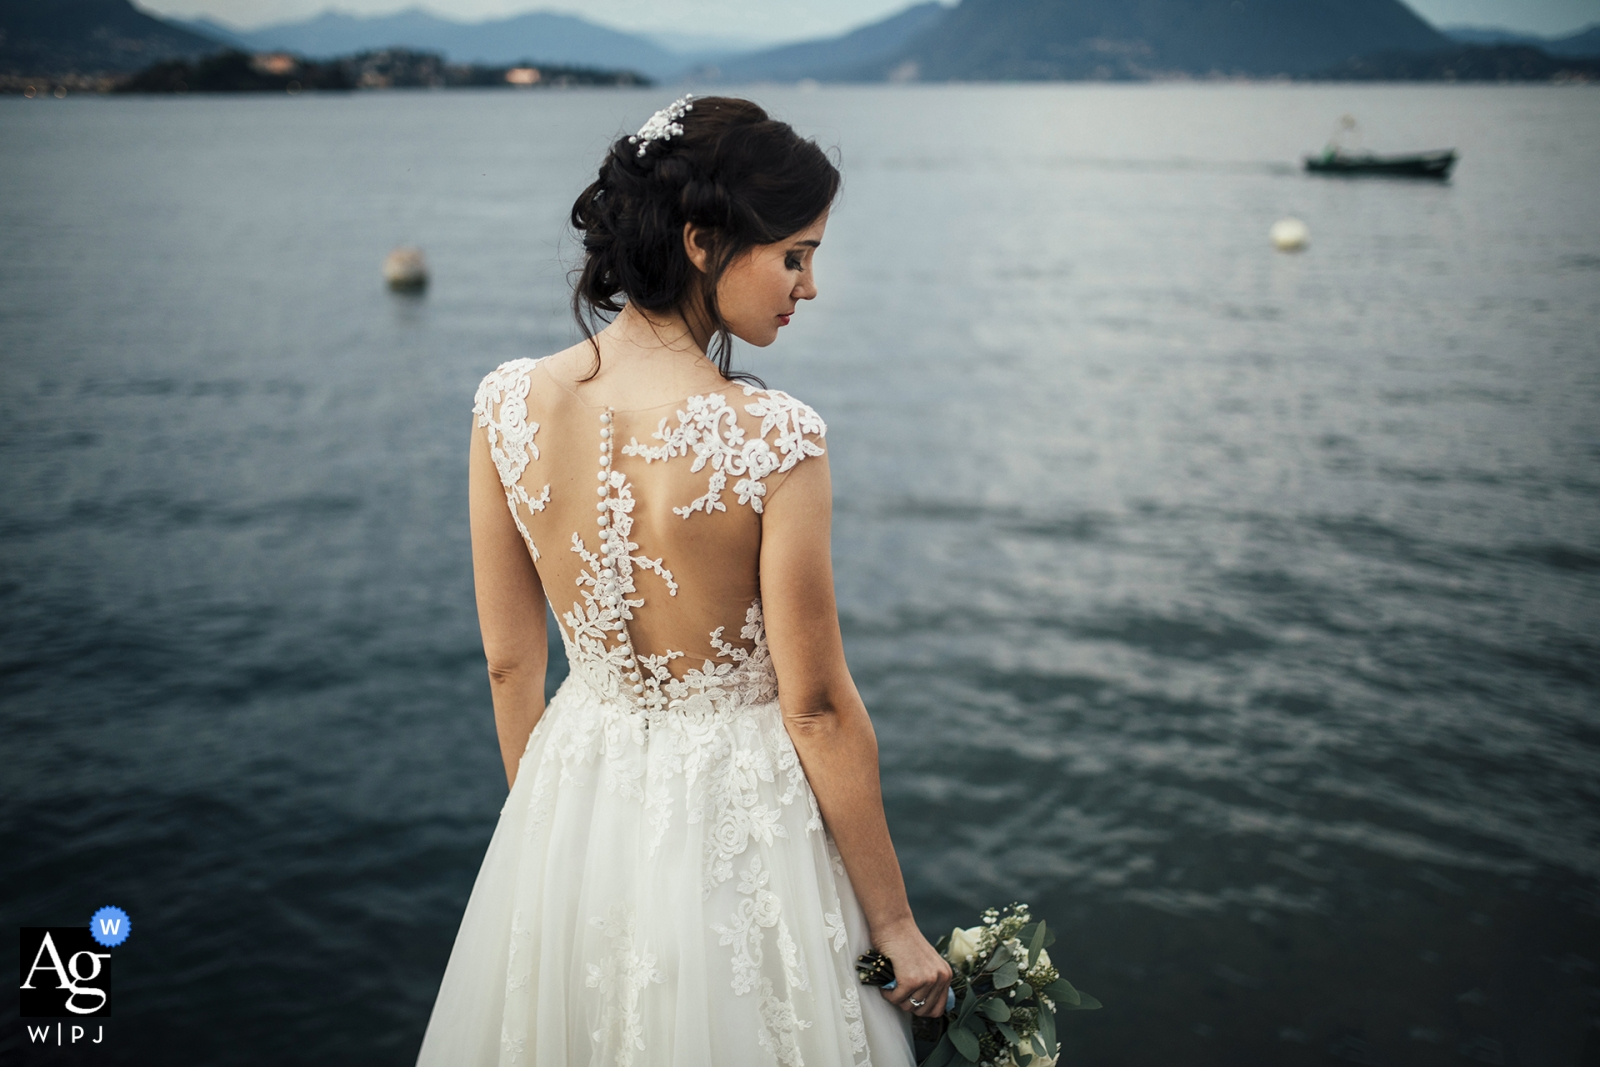 Piedmont wedding day bride portrait at the water showing back of dress and bouquet